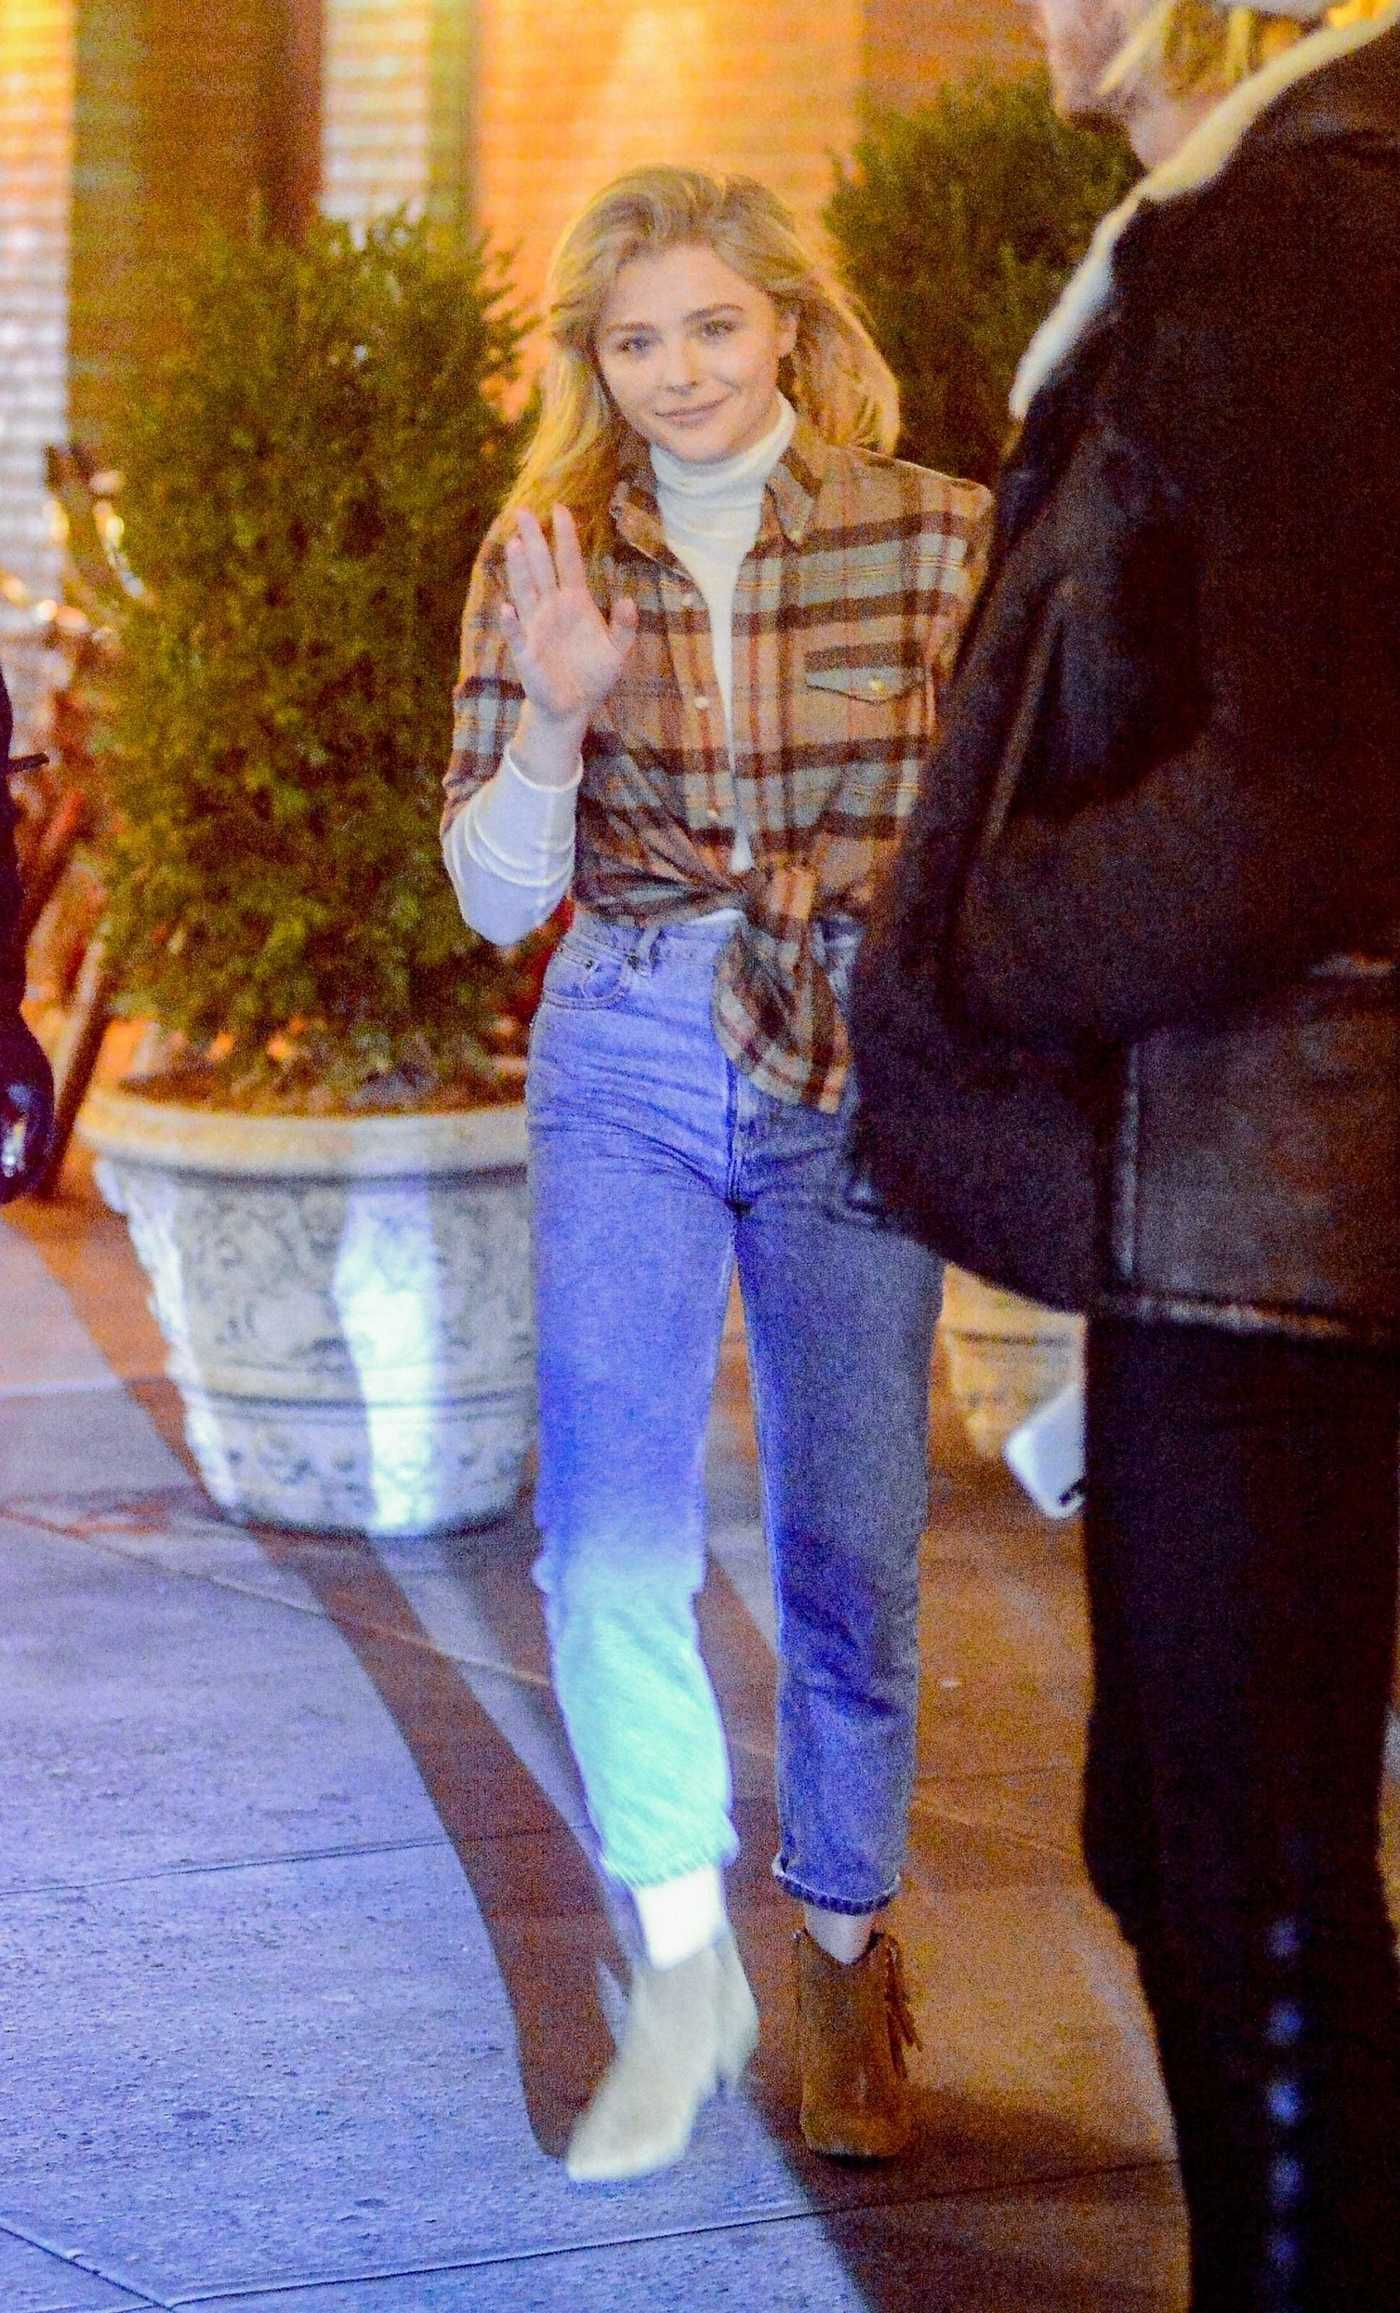 Chloe Moretz in a Plaid Shirt Was Seen Out in New York 12/18/2018